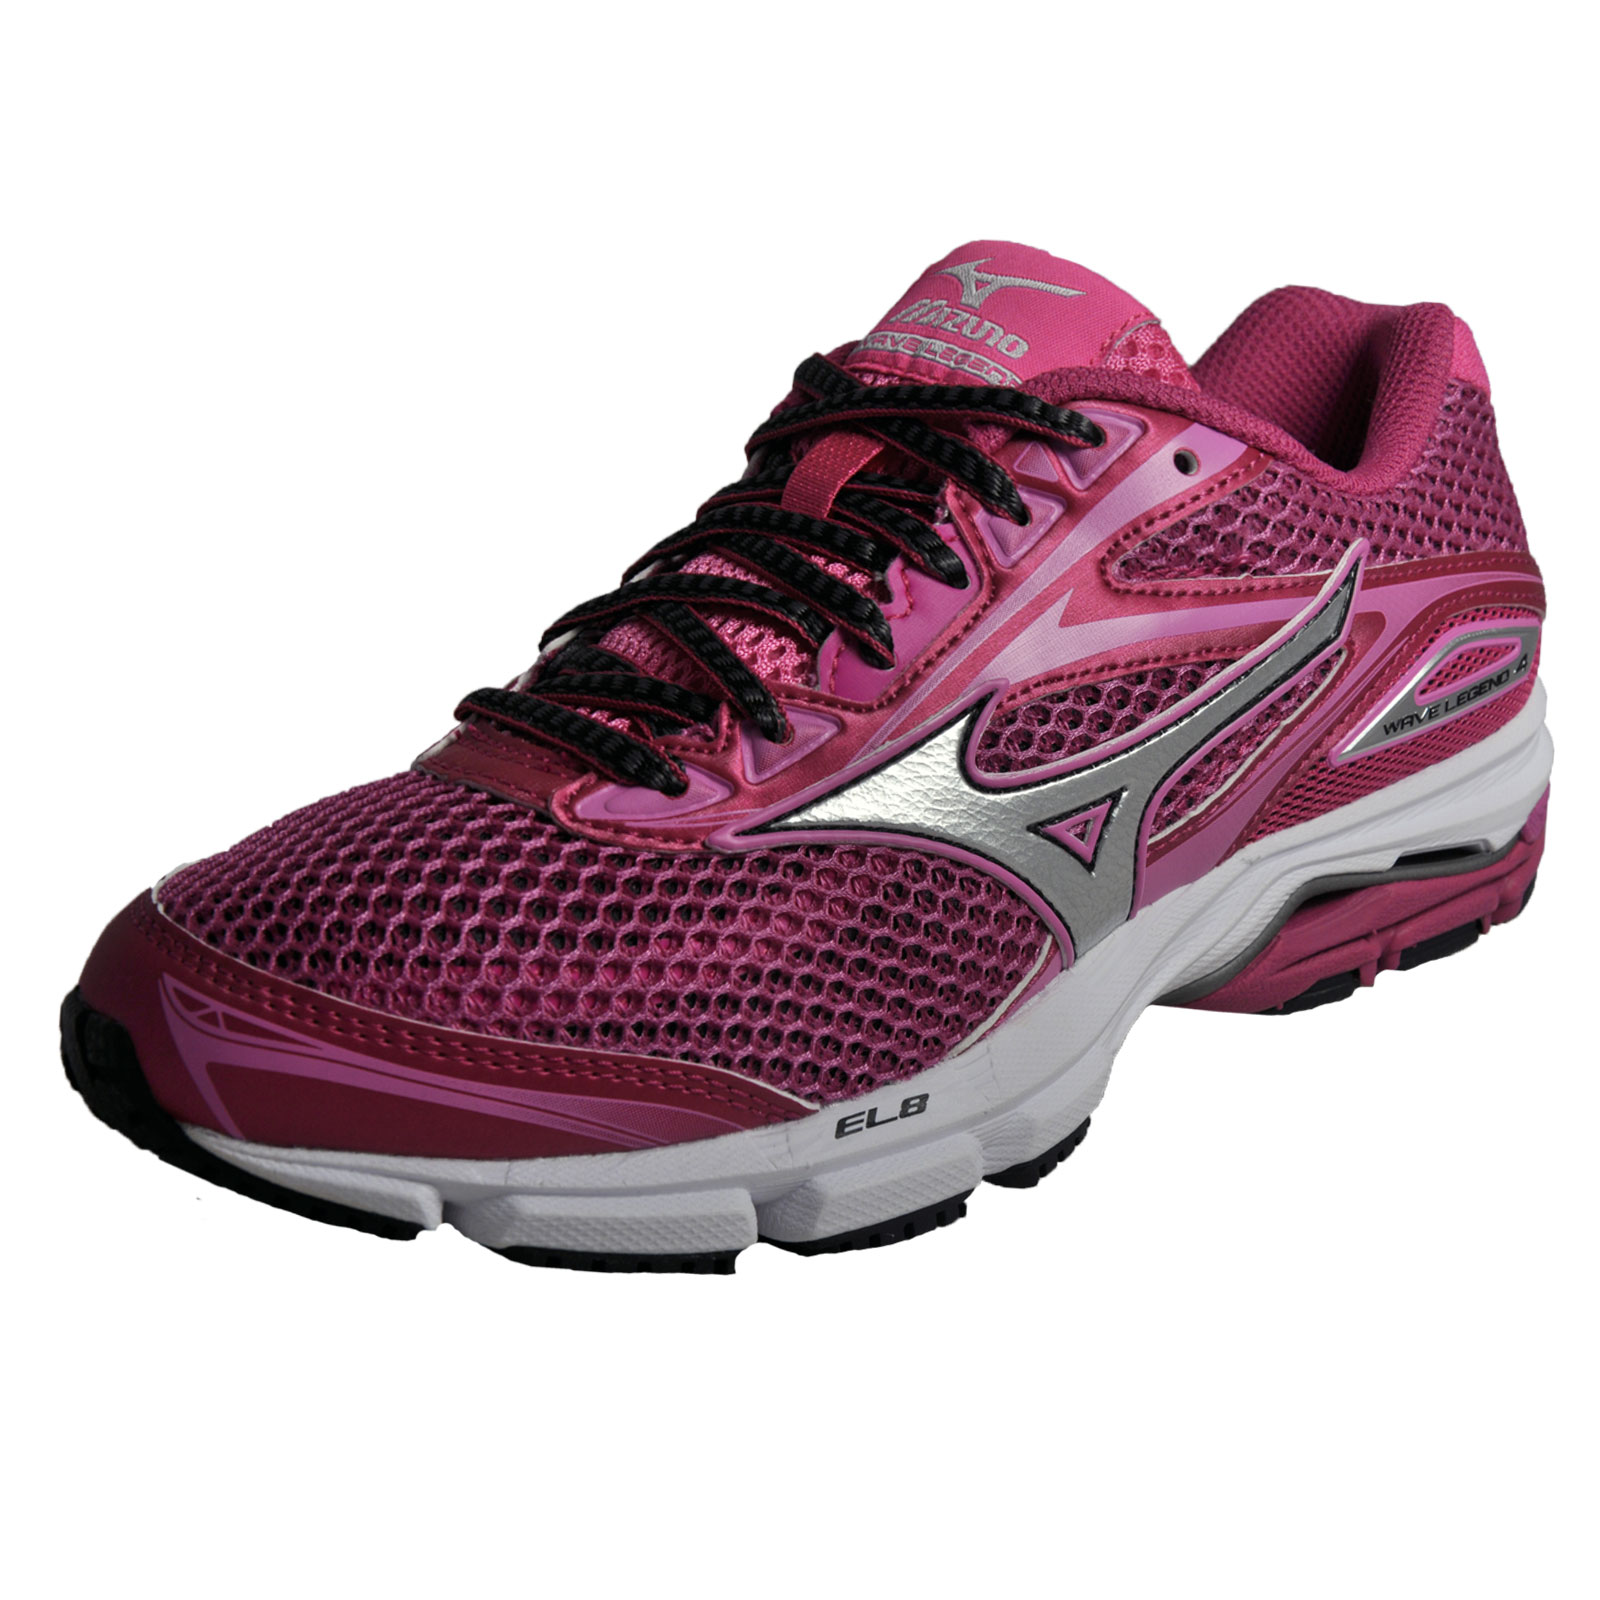 Details about Mizuno Wave Legend 4 Womens Premium Running Shoes Gym Fitness  Trainers Pink cec28b9a808